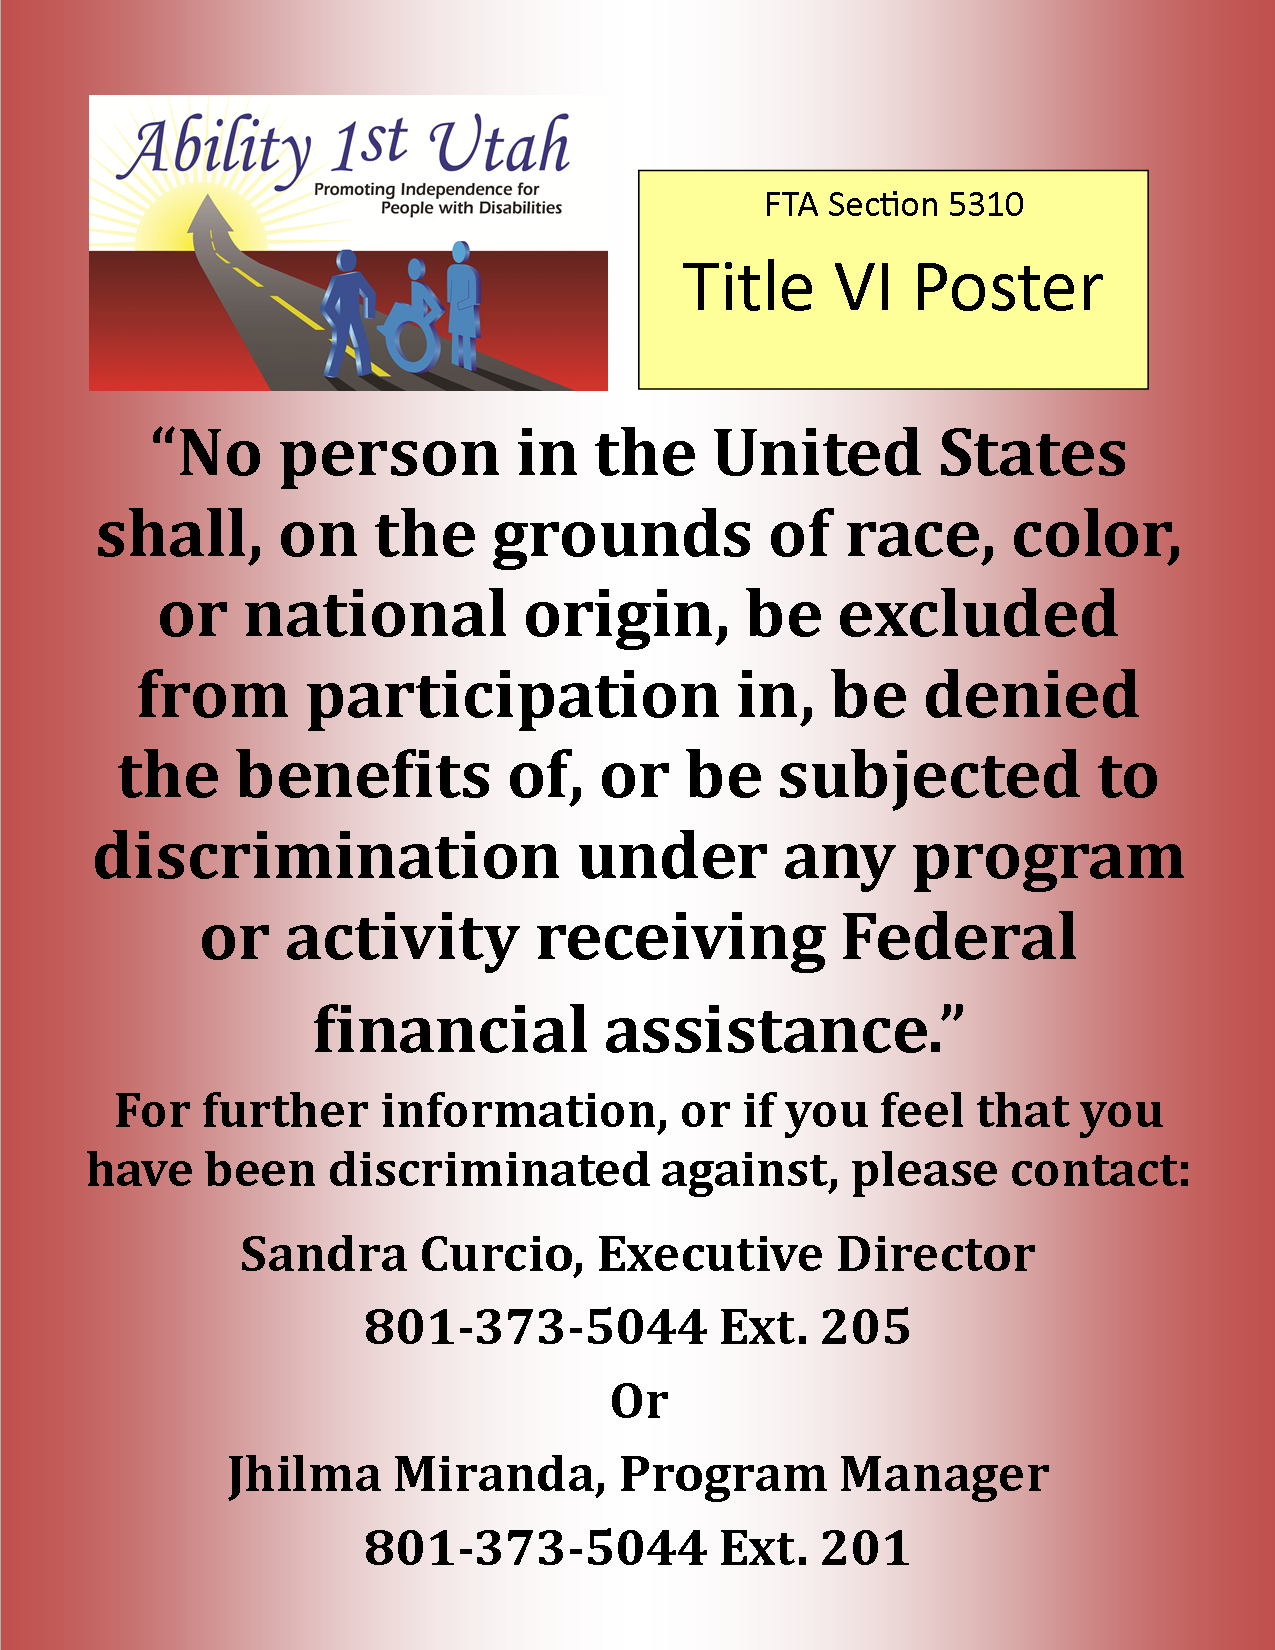 Title 6 Poster. No person in the United States shall, on the grounds of race, color, or national origin, be excluded from participation in, be denied the benefits of, or be subjected to discrimination under any program or activity receiving federal financial assistance. For further information or if you feel that you have been discriminated against please contact Sandra Curcio Executive Director phone number 801 373 5044 extension 205 or Jhilma Miranda Program Manager phone number 801 373 5044 extension 201